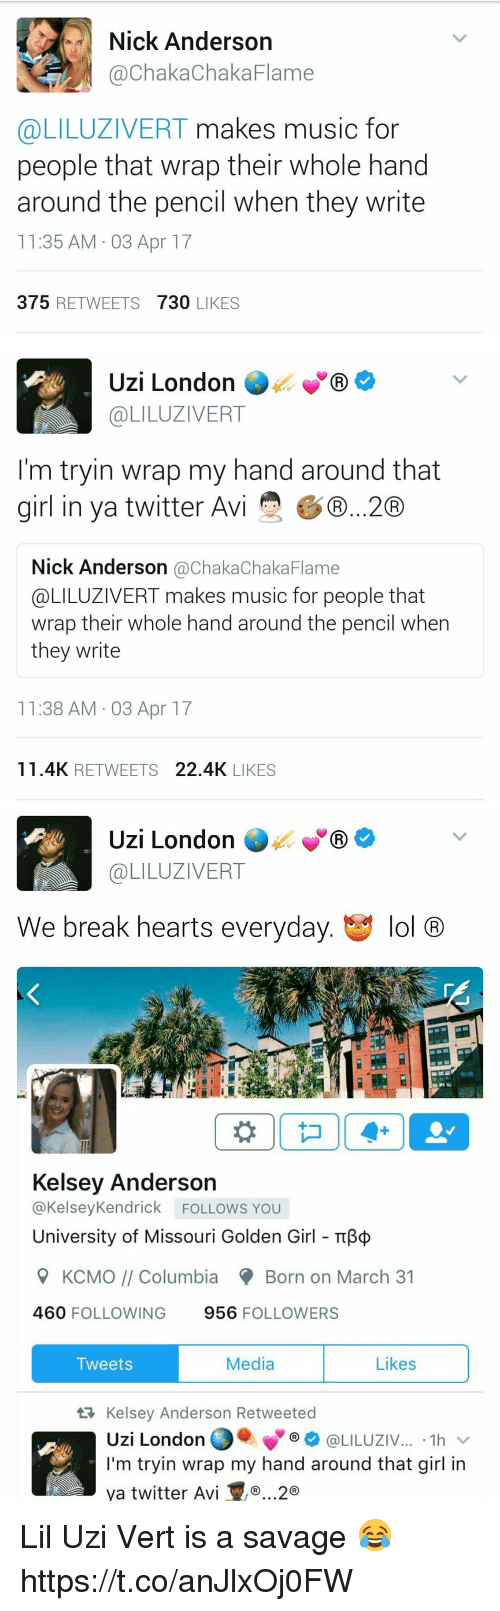 Lol, Music, and Savage: Nick Anderson  @Chaka ChakaFlame  @LILUZIVERT makes music for  people that wrap their whole hand  around the pencil when they write  11:35 AM 03 Apr 17  375  RETWEETS  730  LIKES   Uzi London  COLILUZIVERT  I'm tryin wrap my hand around that  girl in ya twitter Avi  GD...20  Nick Anderson  achakaChaka Flame  @LILUZIVERT makes music for people that  wrap their whole hand around the pencil when  they write  11:38 AM 03 Apr 17  11.4K RETWEETS  22.4K  LIKES   Uzi London  GR  @LILUZIVERT  We break hearts everyday  t y lol  CRO  Kelsey Anderson  @Kelsey Kendrick FOLLOWS YOU  University of Missouri Golden Girl TTB  9 KCMO Columbia Born on March 31  460  FOLLOWING  956  FOLLOWERS  Media  Likes  Tweets  tR Kelsey Anderson Retweeted  Uzi London  @LILUZIV  1h  I'm tryin wrap my hand around that girl in  ya twitter Avi ..2 Lil Uzi Vert is a savage 😂 https://t.co/anJlxOj0FW